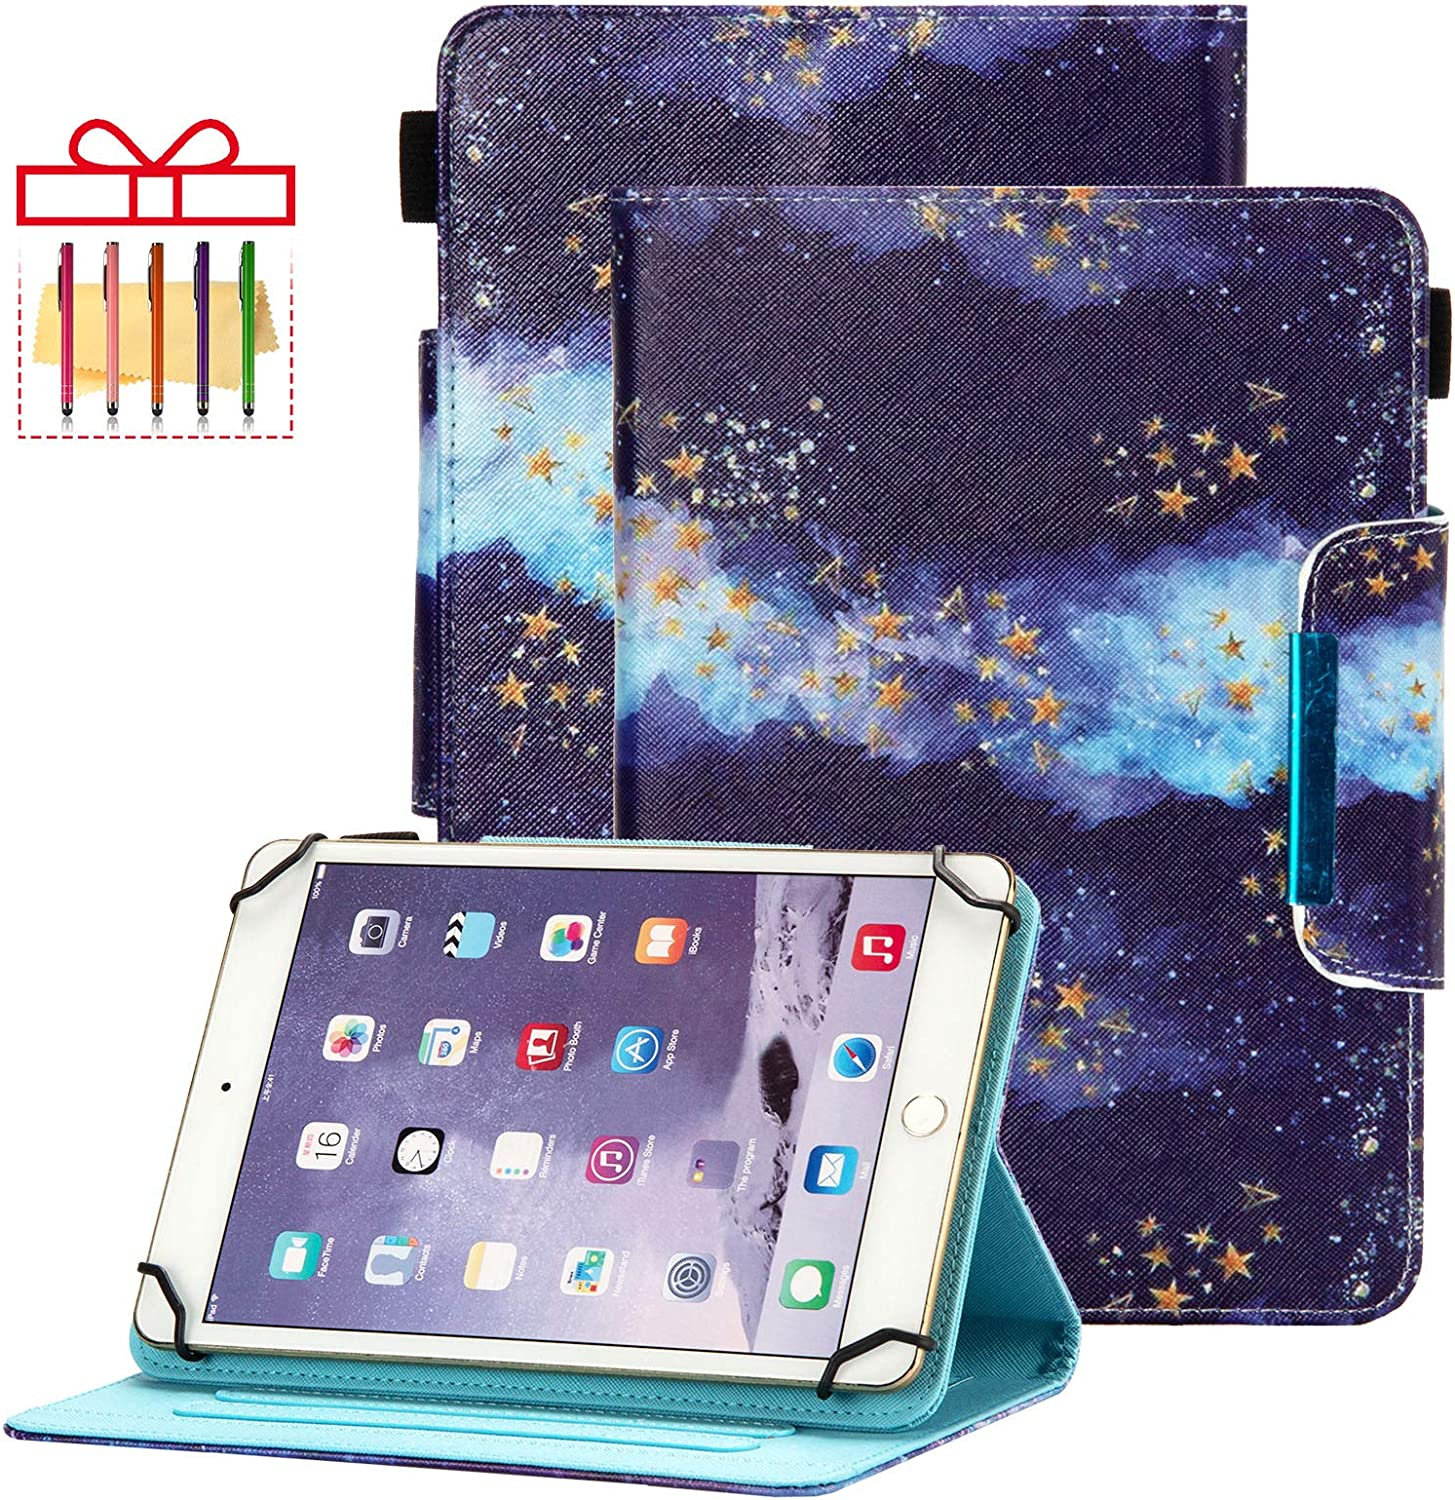 "Popbag Universal Case for 7 Inch Tablet - Stand Wallet Fold Cover for Galaxy Tab 7 / Dragon Touch 7 / Fire 7 / Onn 7"" / RCA Voyager 7.0 / HDX 7 / Huawei T3 / Lenovo Tab 7 Inch Tablet, Blue Starry Sky"